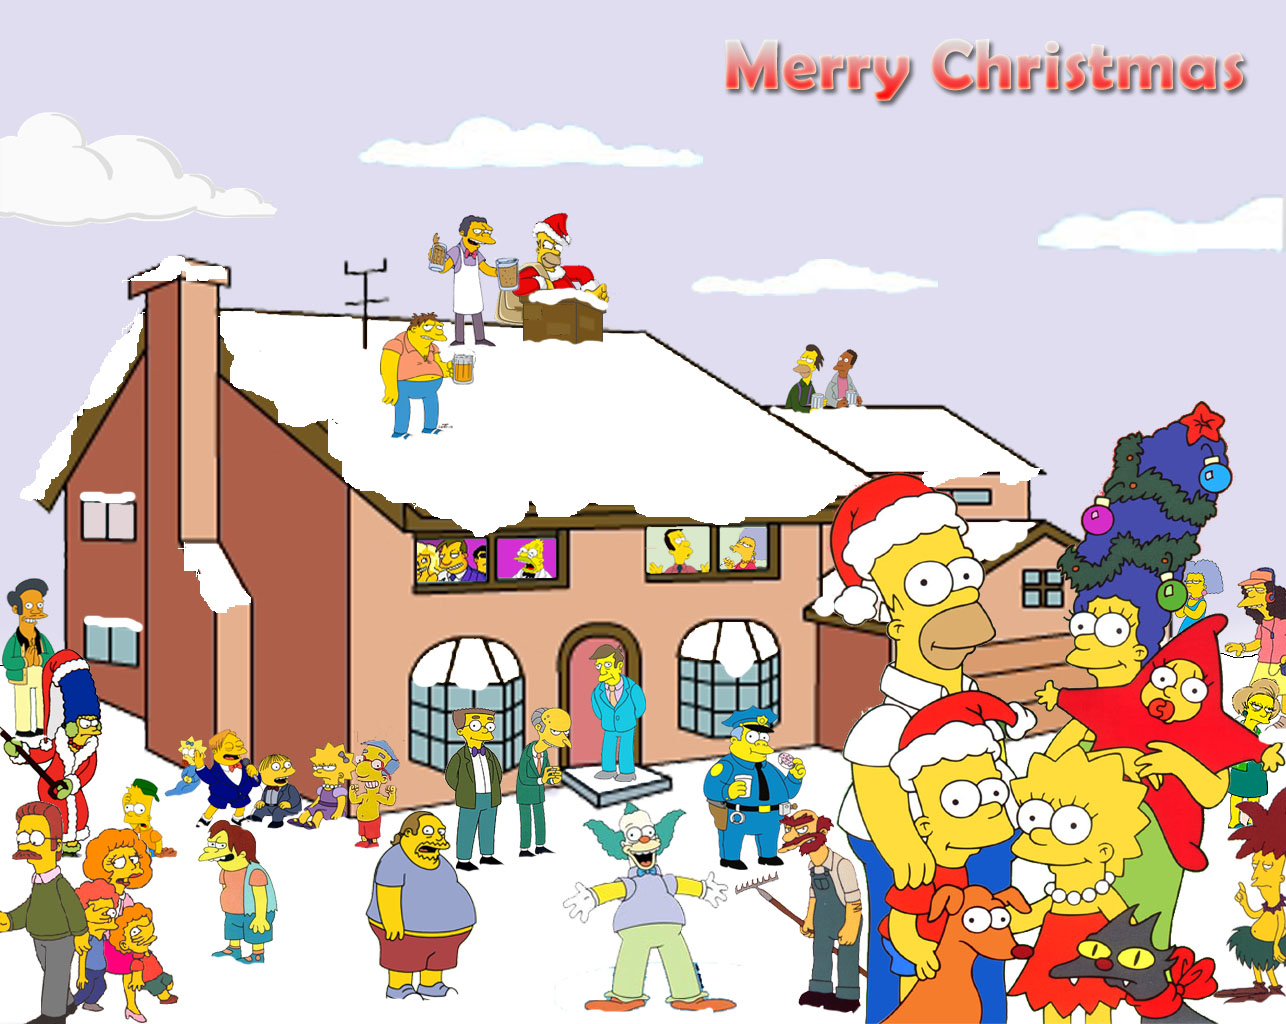 The simpsons wallpapers christmas - Socialphy